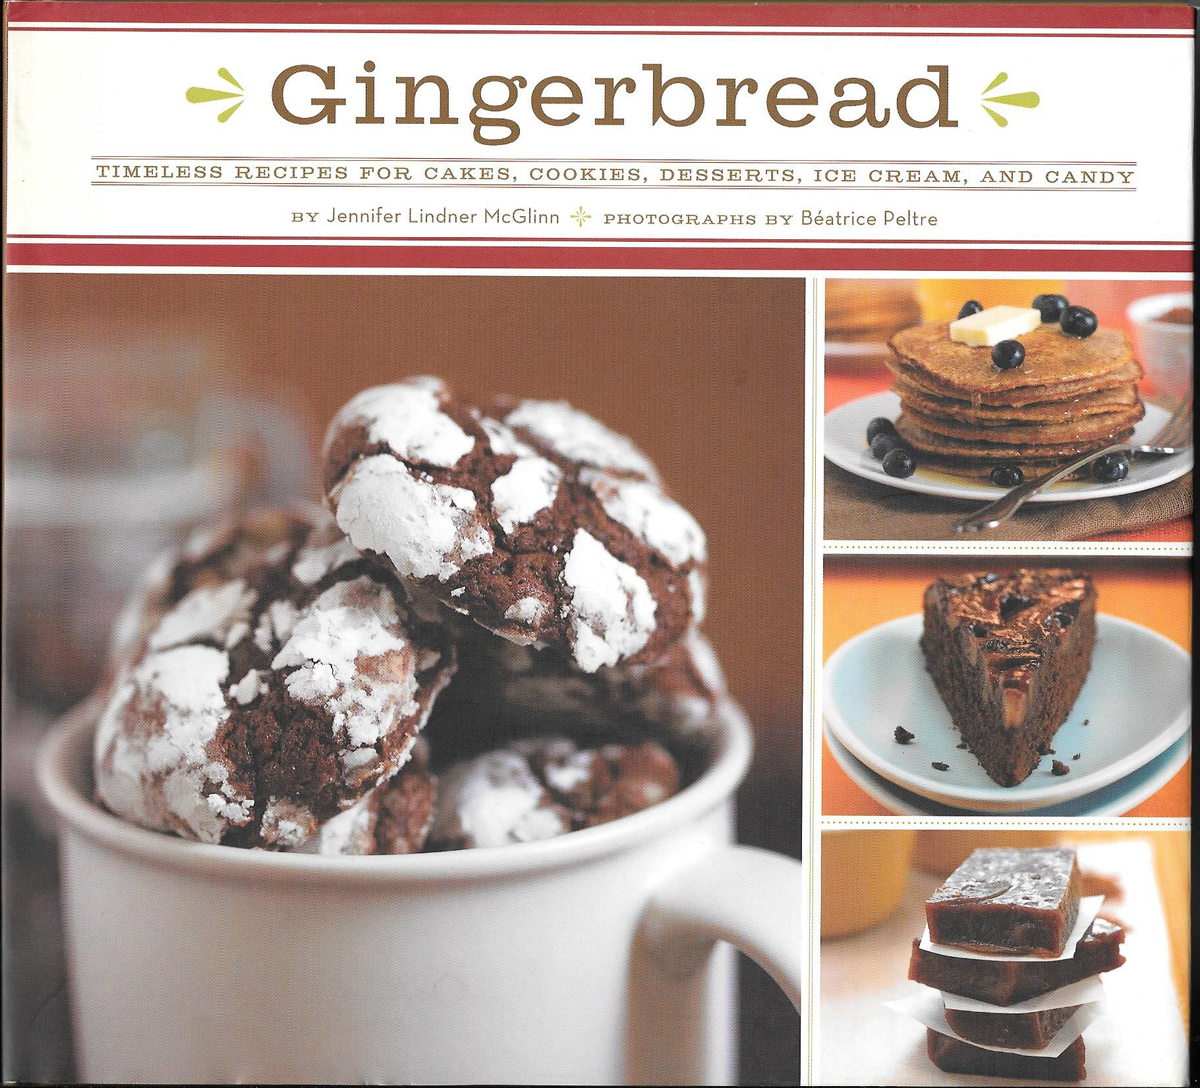 Gingerbread by Jennifer Lindner McGlinn